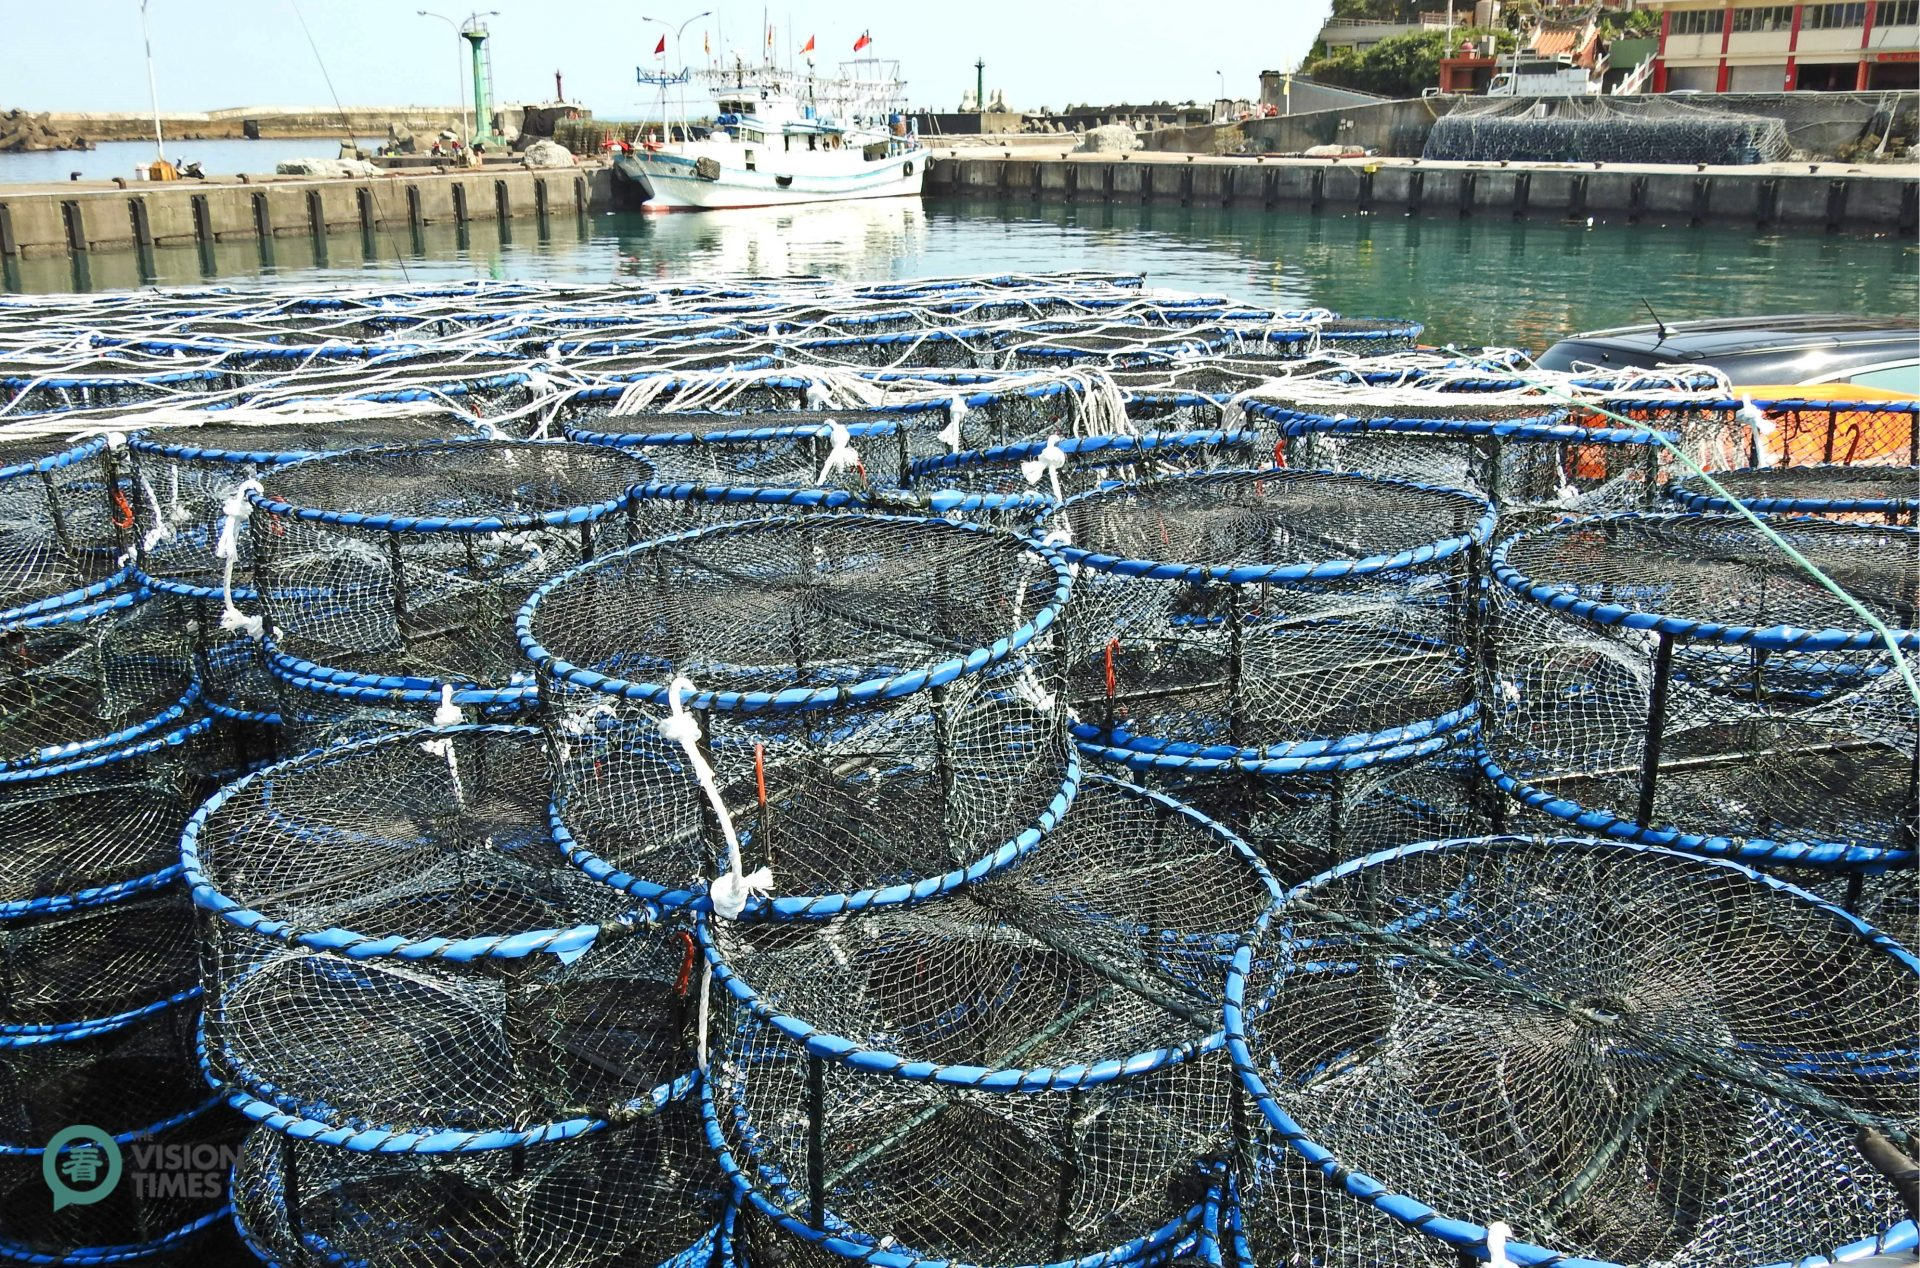 Fishermen in Wanli use baited crab cages to catch crabs. (Image: Billy Shyu / Vision Times)